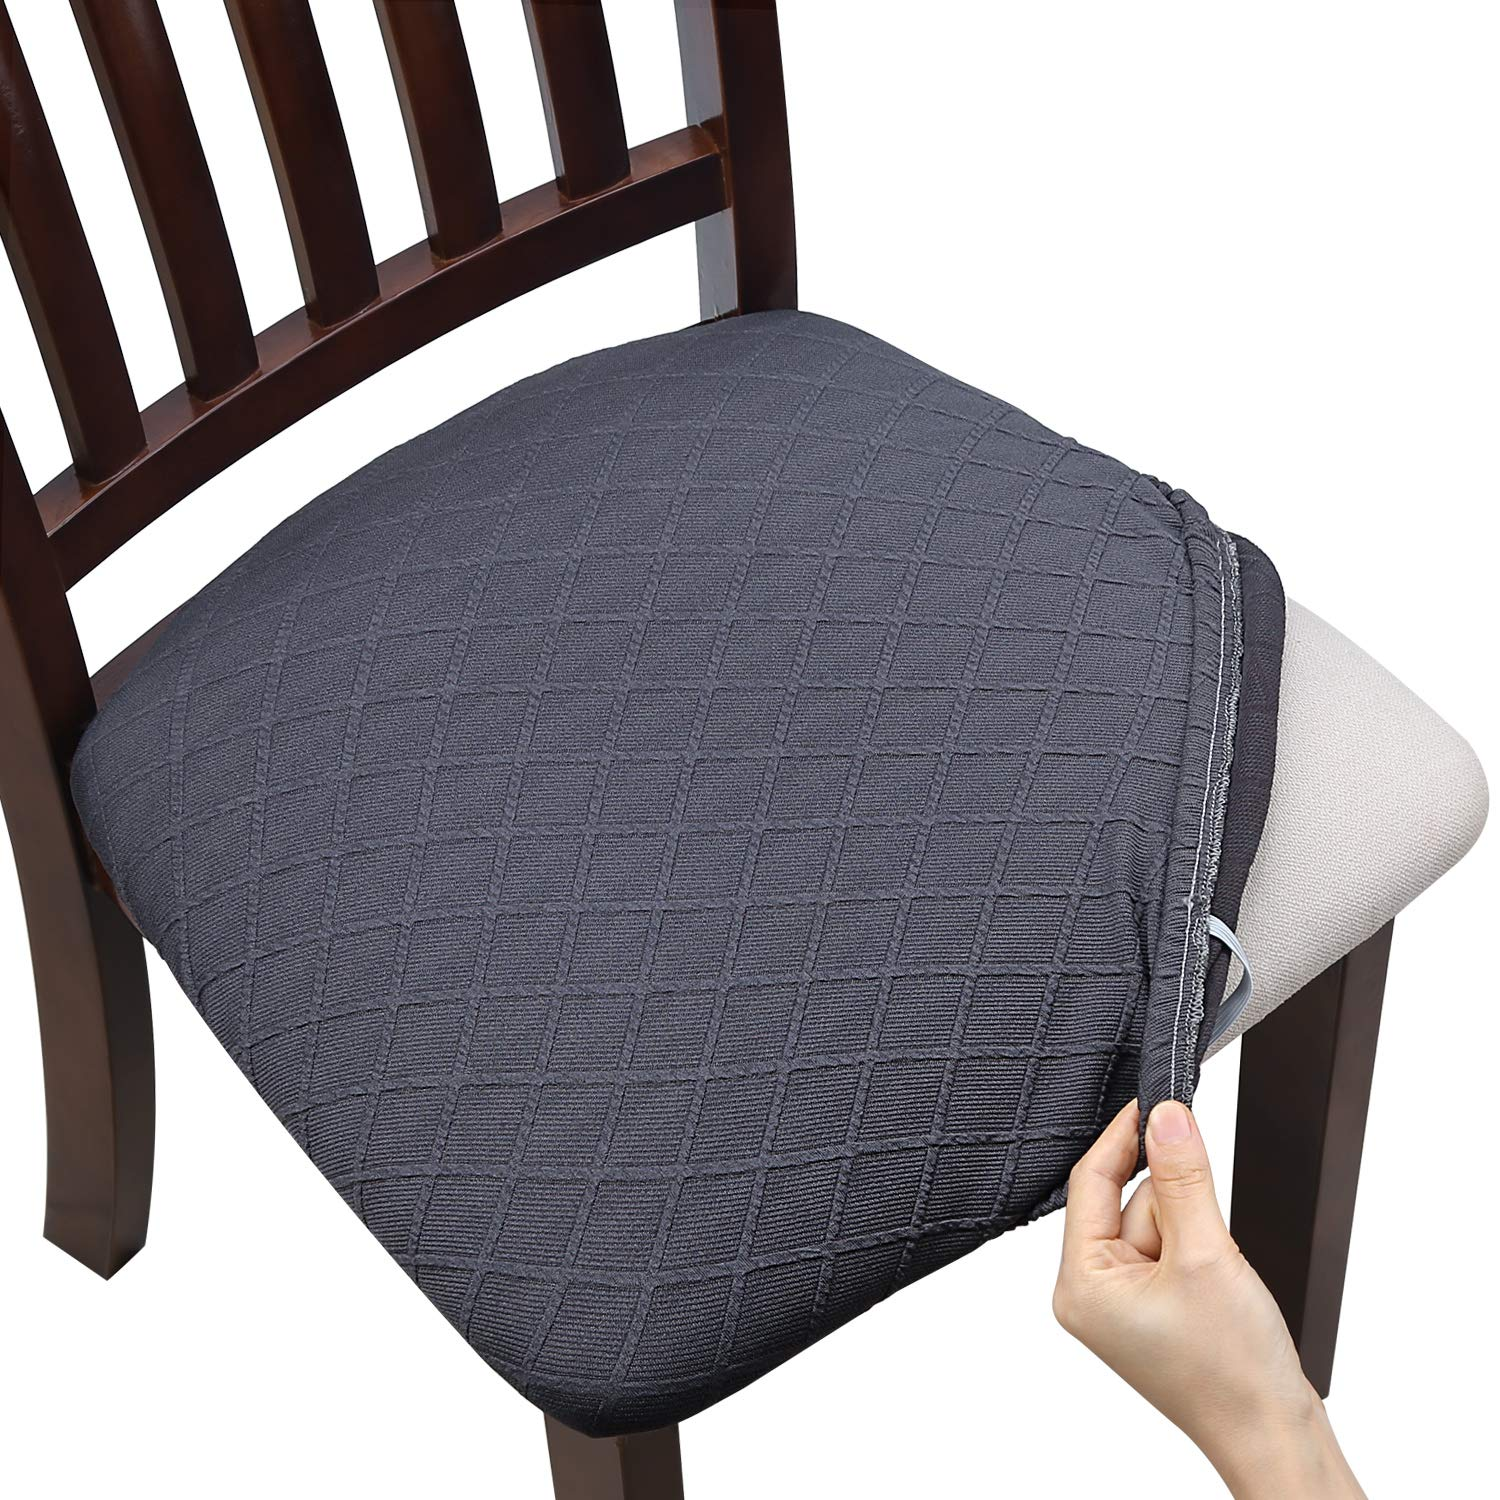 Fuloon Stretch Jacquard Chair Seat Covers,Removable Washable Anti-Dust Dinning Room Chair Seat Cushion Slipcovers (4, Gray) by Fuloon